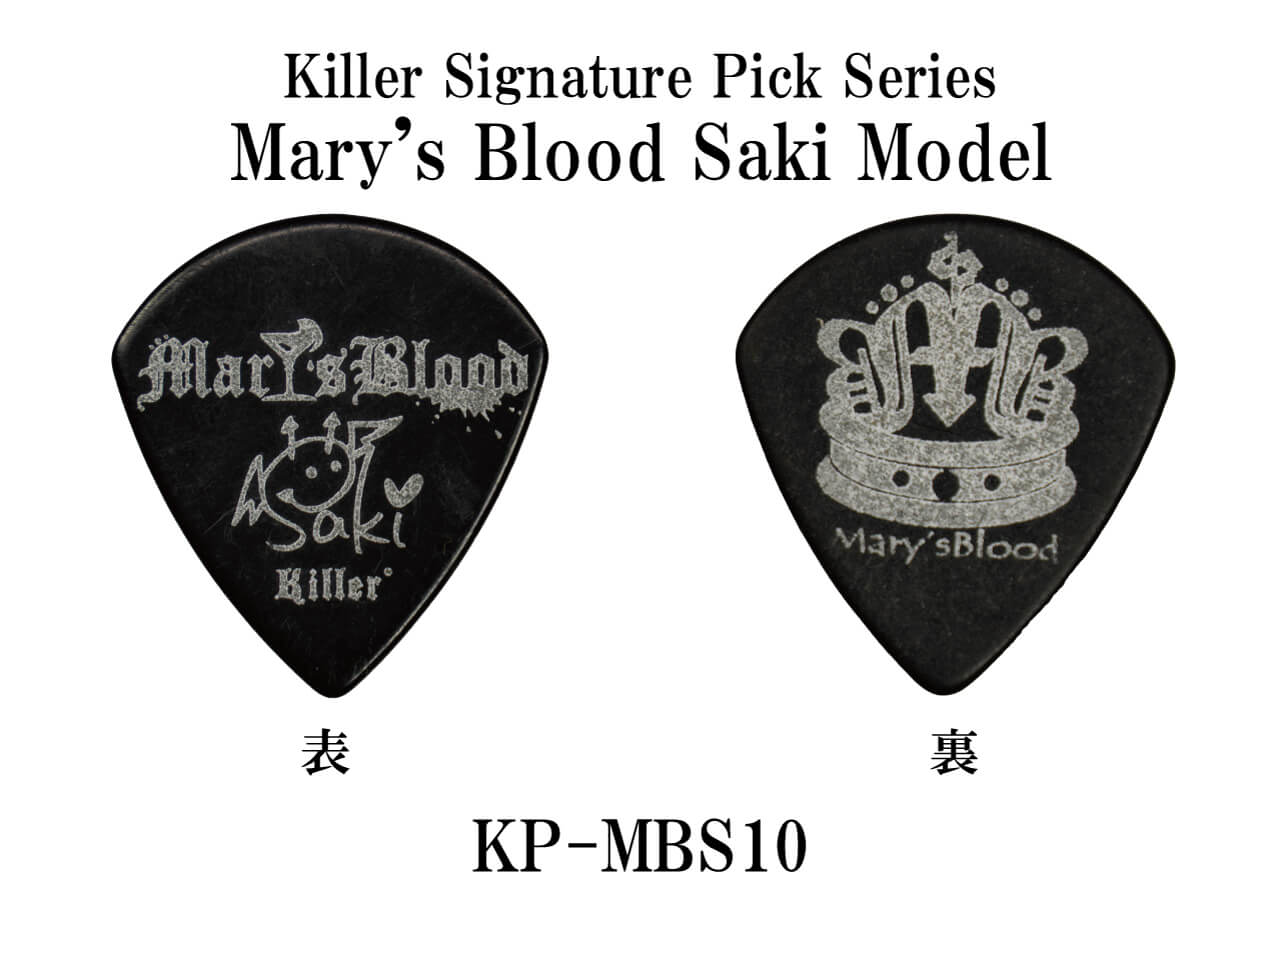 Killer(キラー) Signature Pick Series KP-MBS10 (Mary's Blood/SAKIモデル)